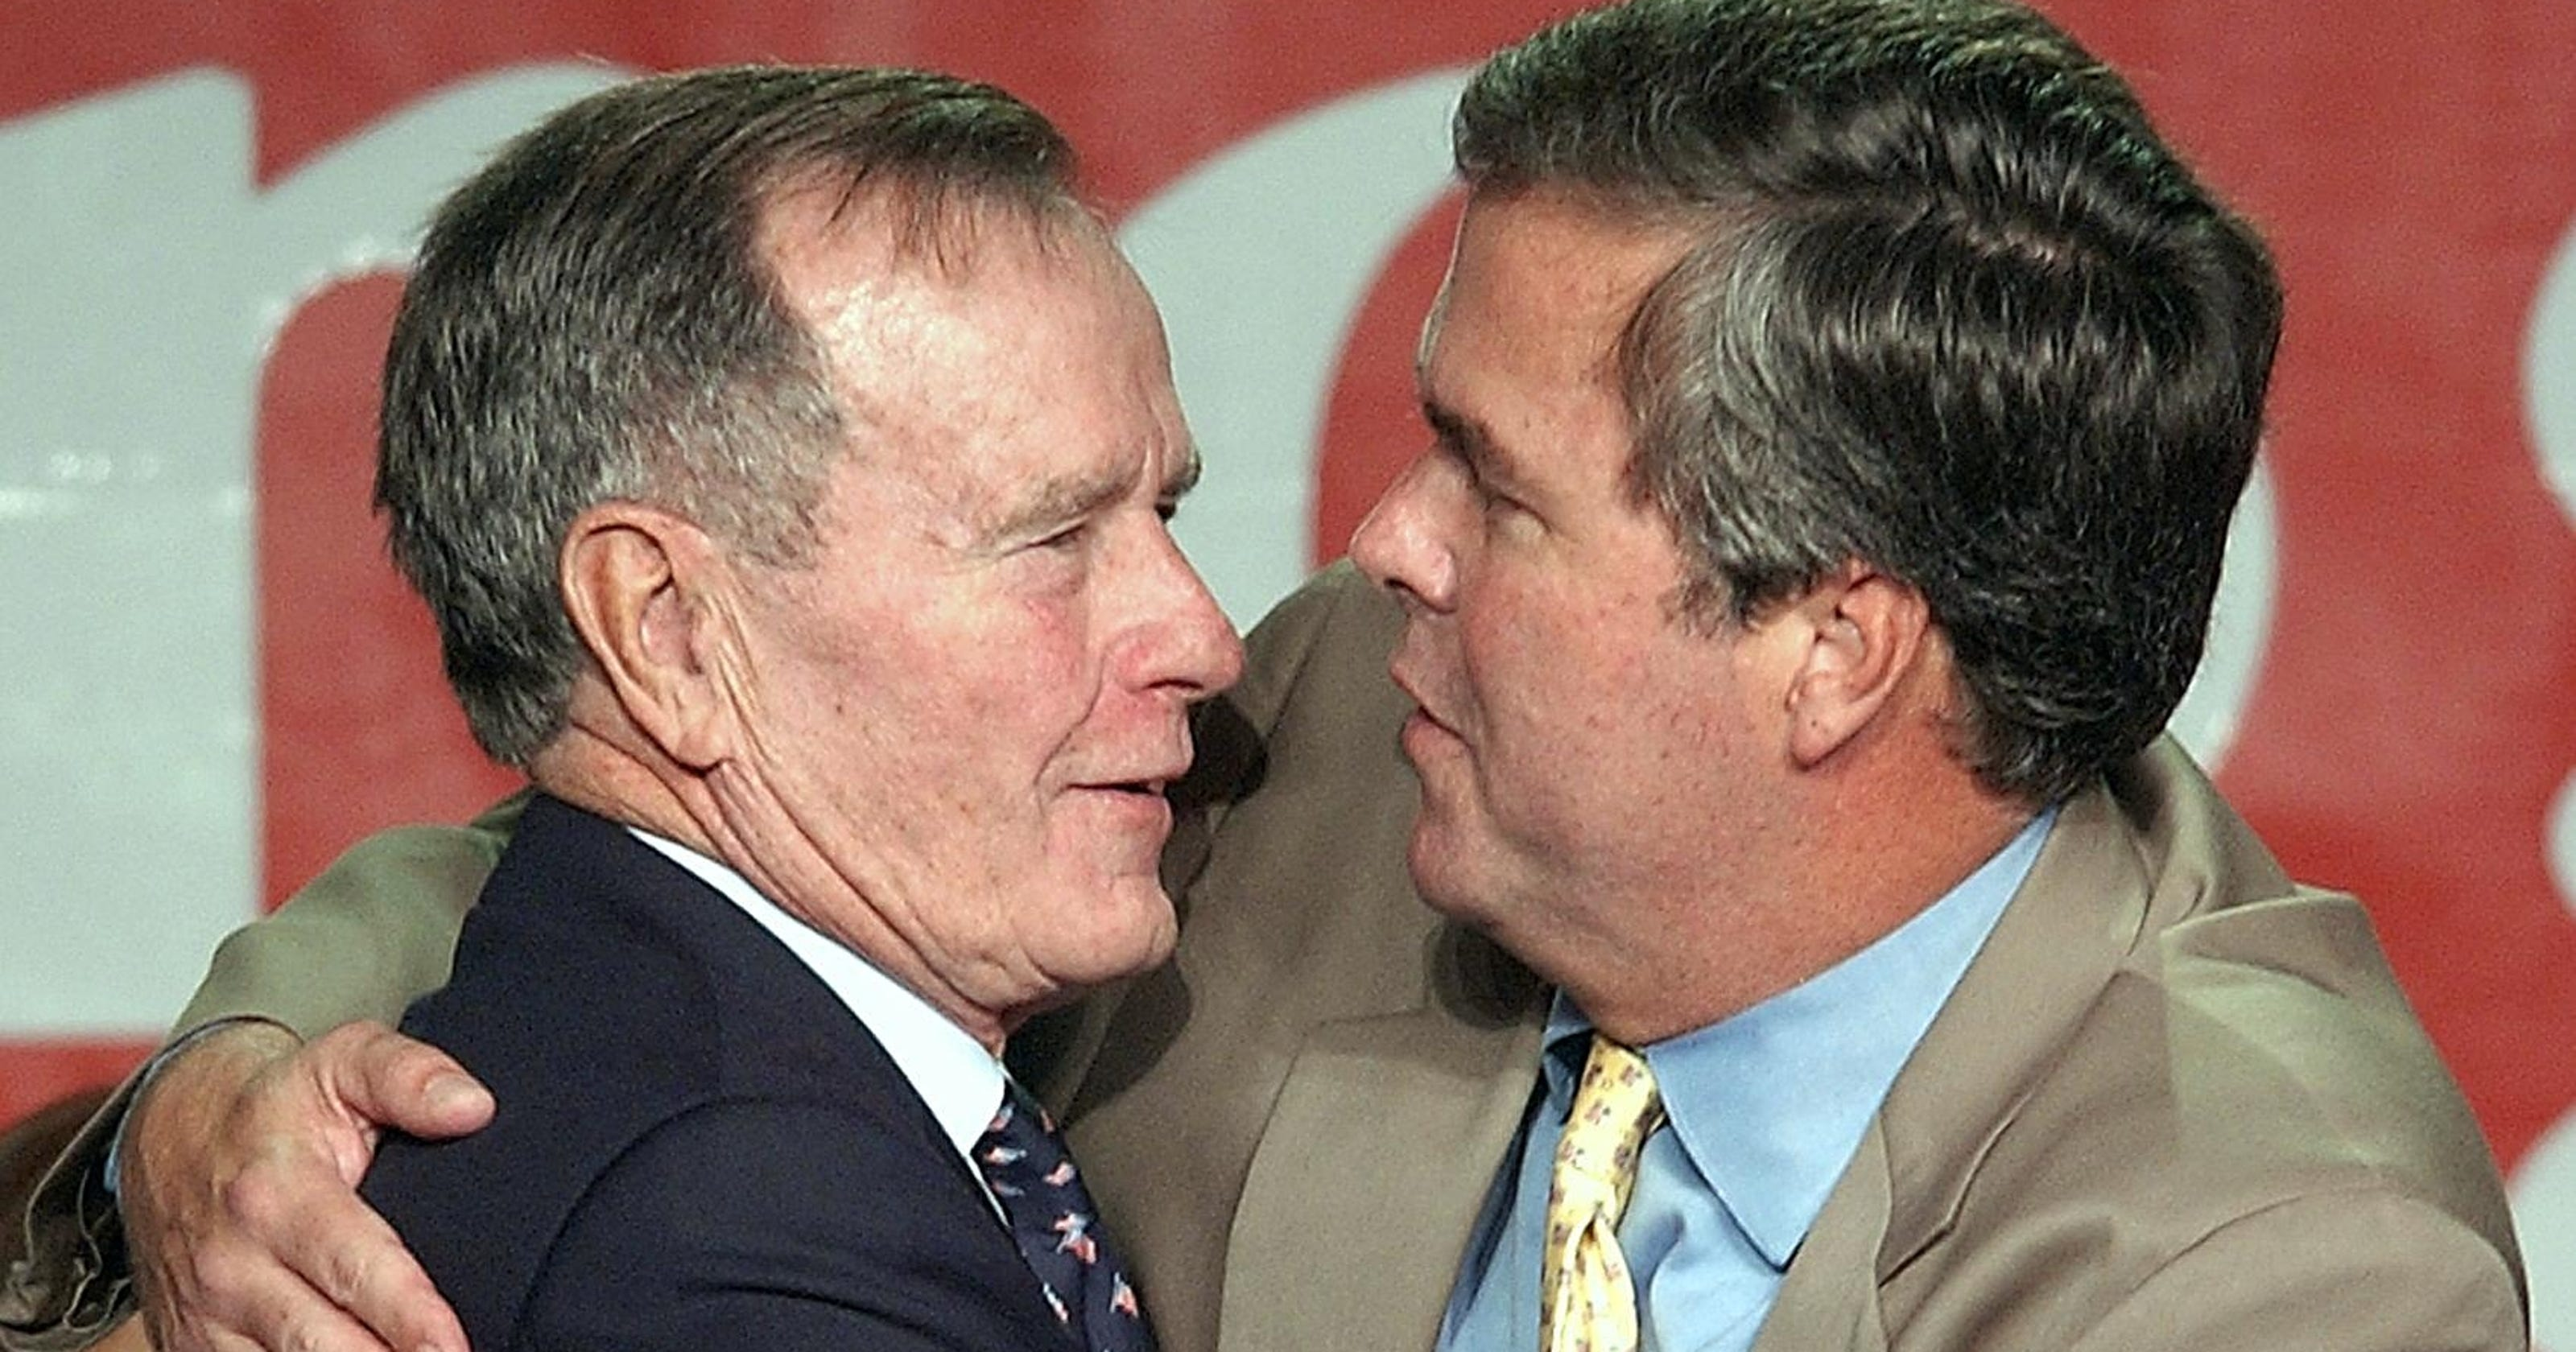 George bush threesome muscles long